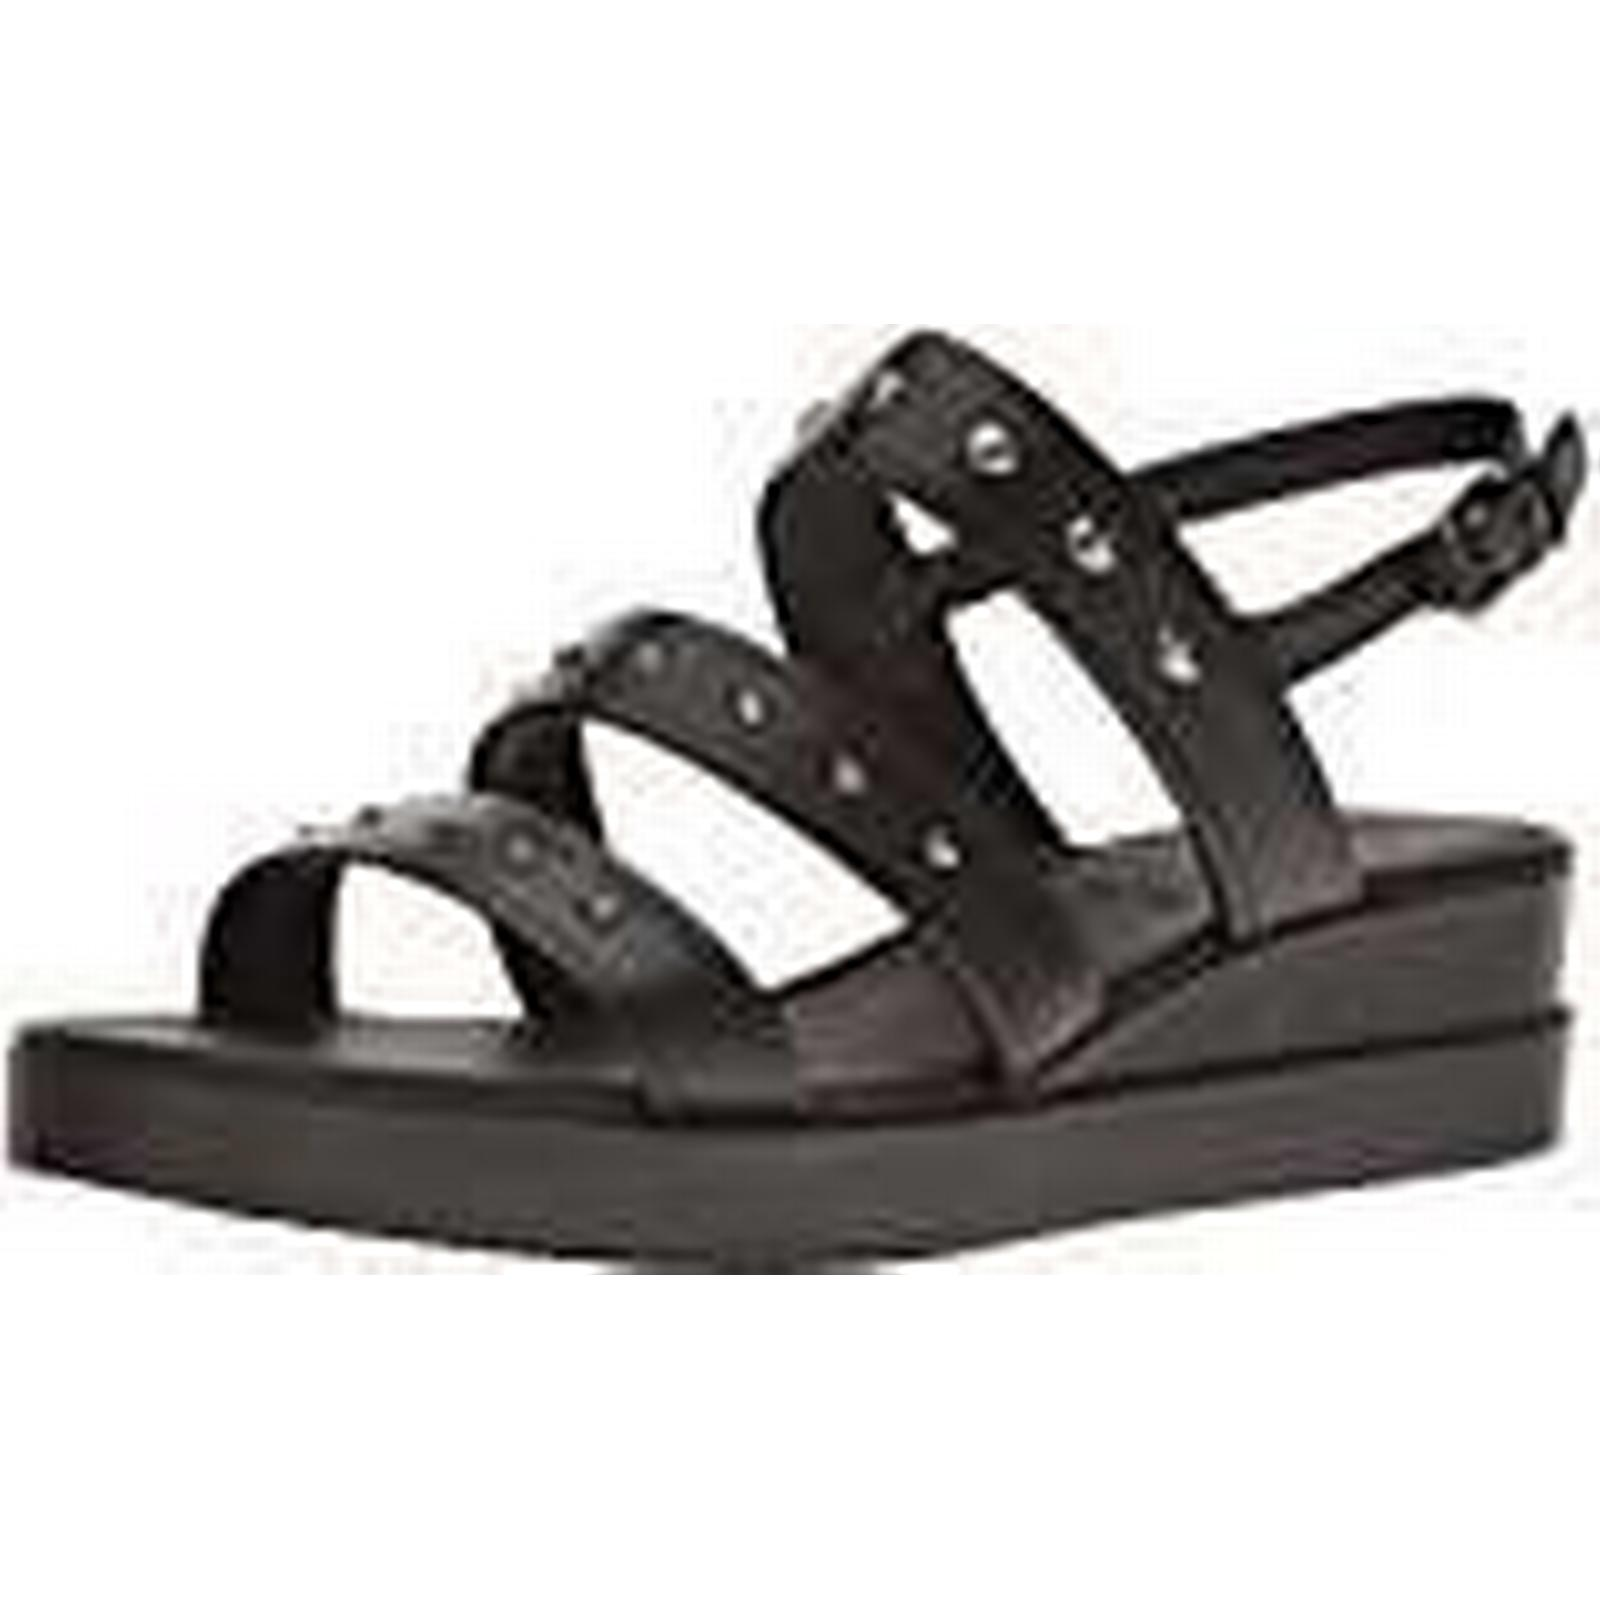 ECCO Open Women's Touch Sandal Plateau Open ECCO Toe Sandals, Black (1001BLACK), 41 EU 797705